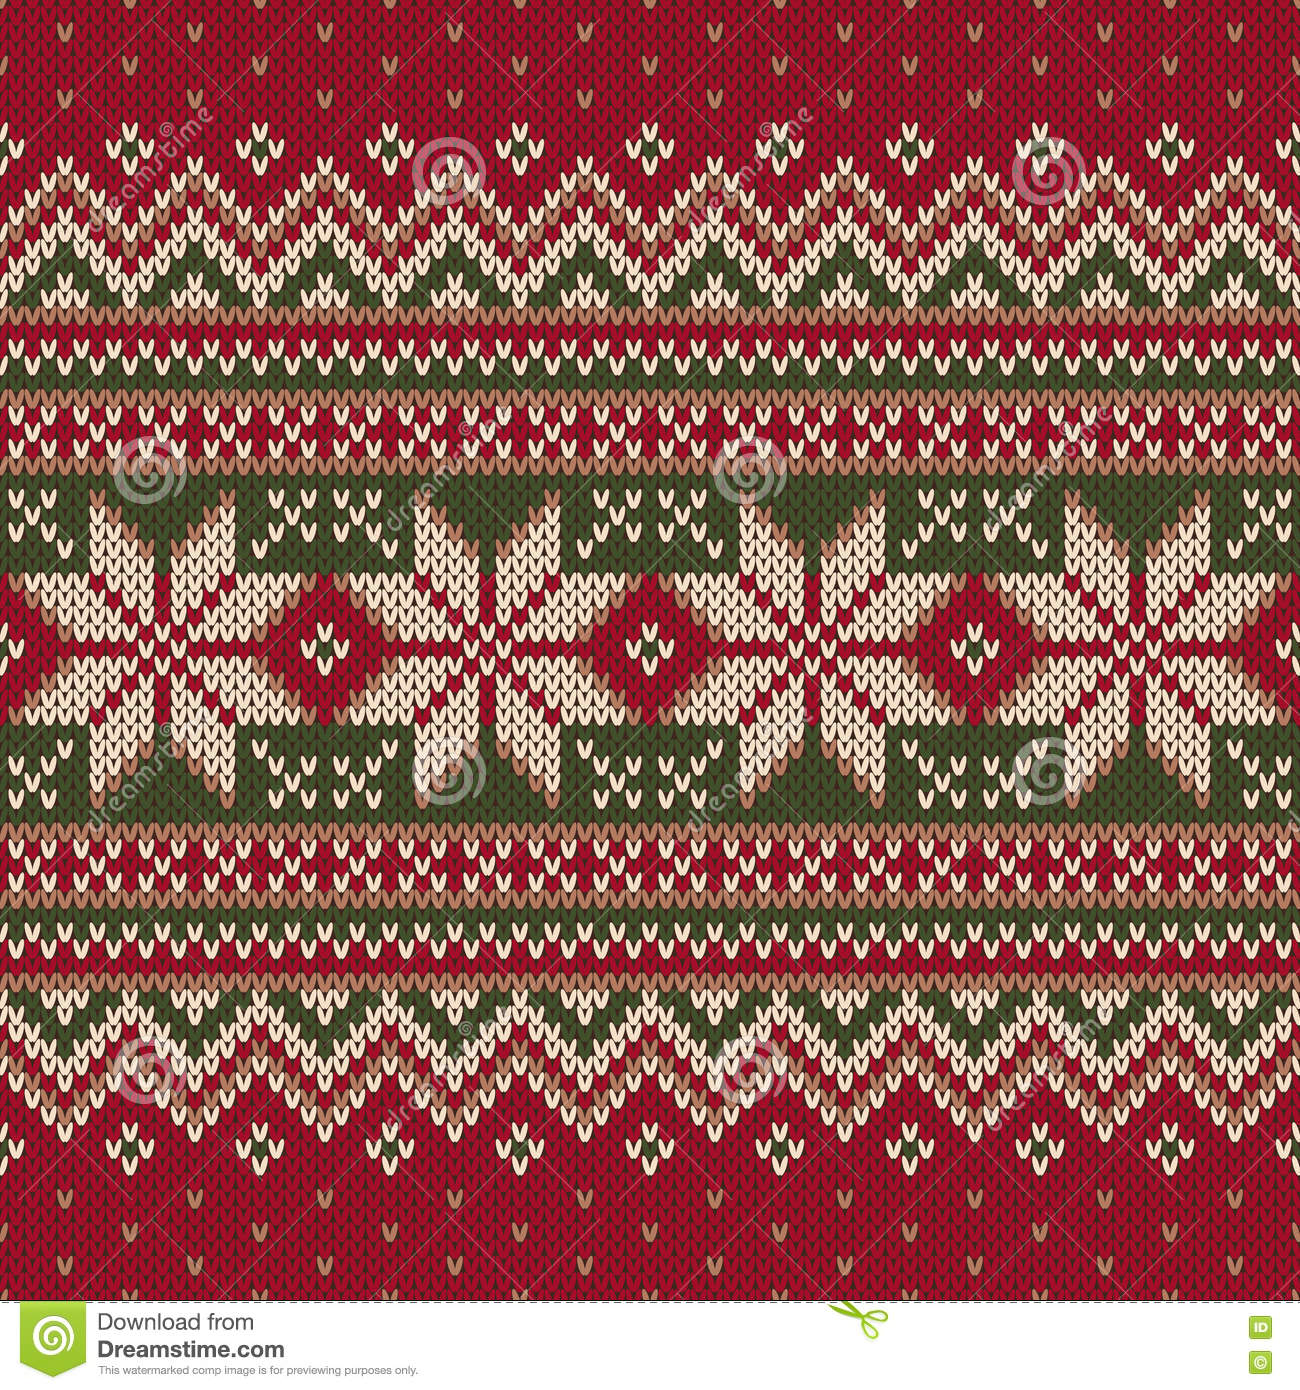 Knitting Vector Patterns : Winter holiday fair isle knitted pattern vector seamless